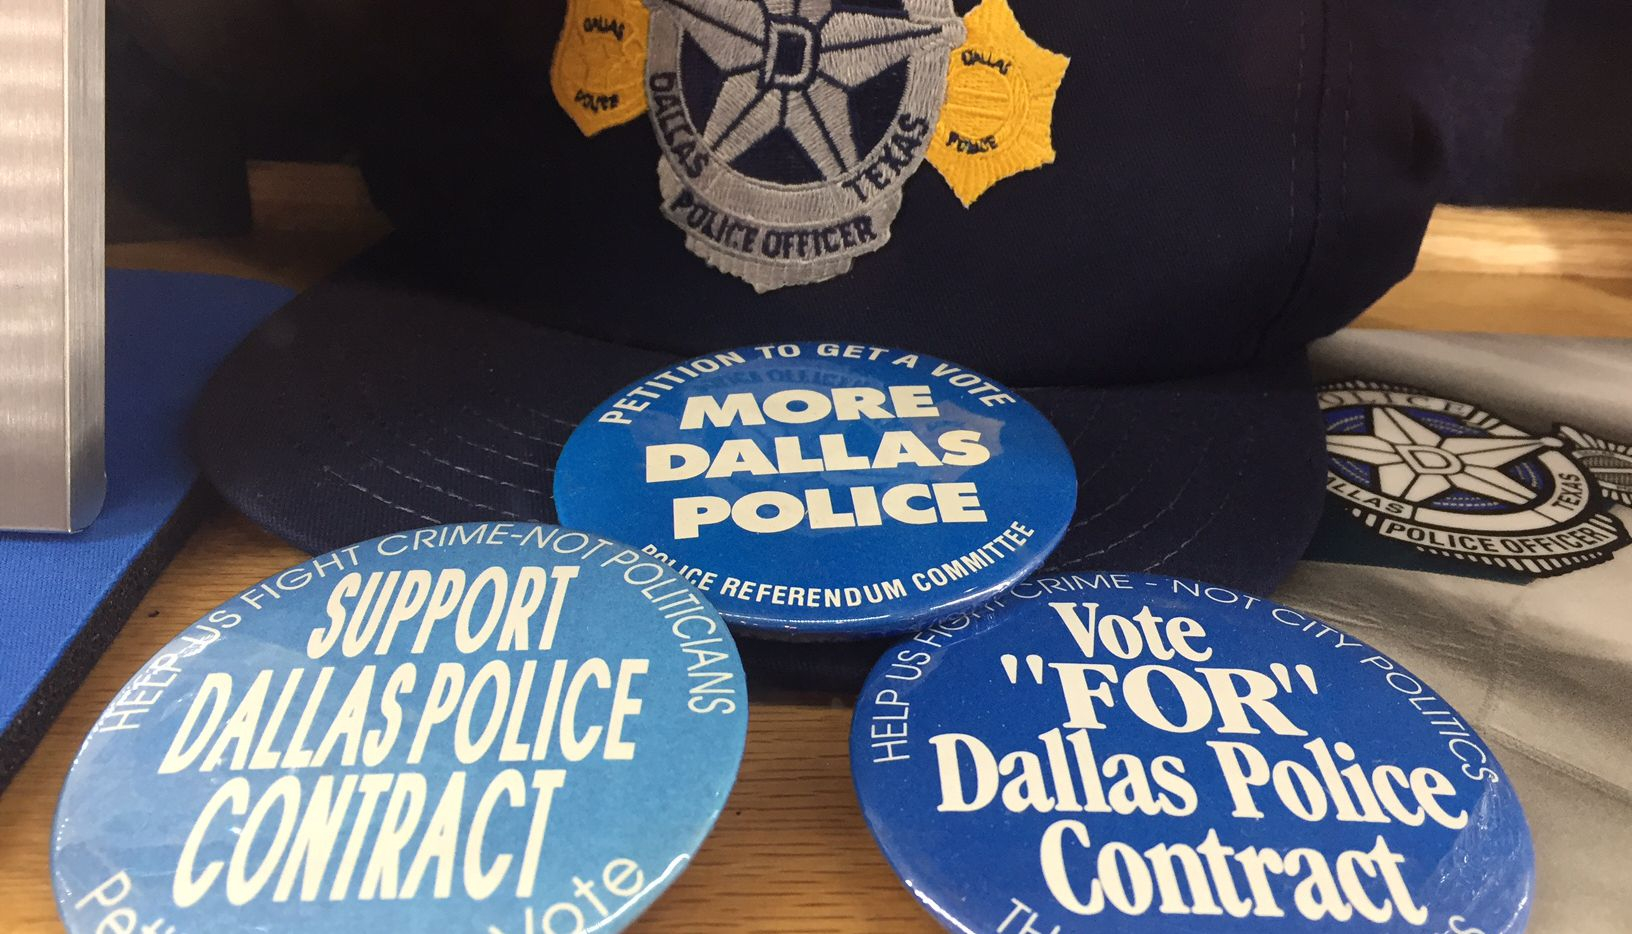 Buttons on display at the Dallas Police Association's headquarters reveal some of the longstanding feelings about what the association says City Hall needs to do for officers. (Tristan Hallman/Staff)